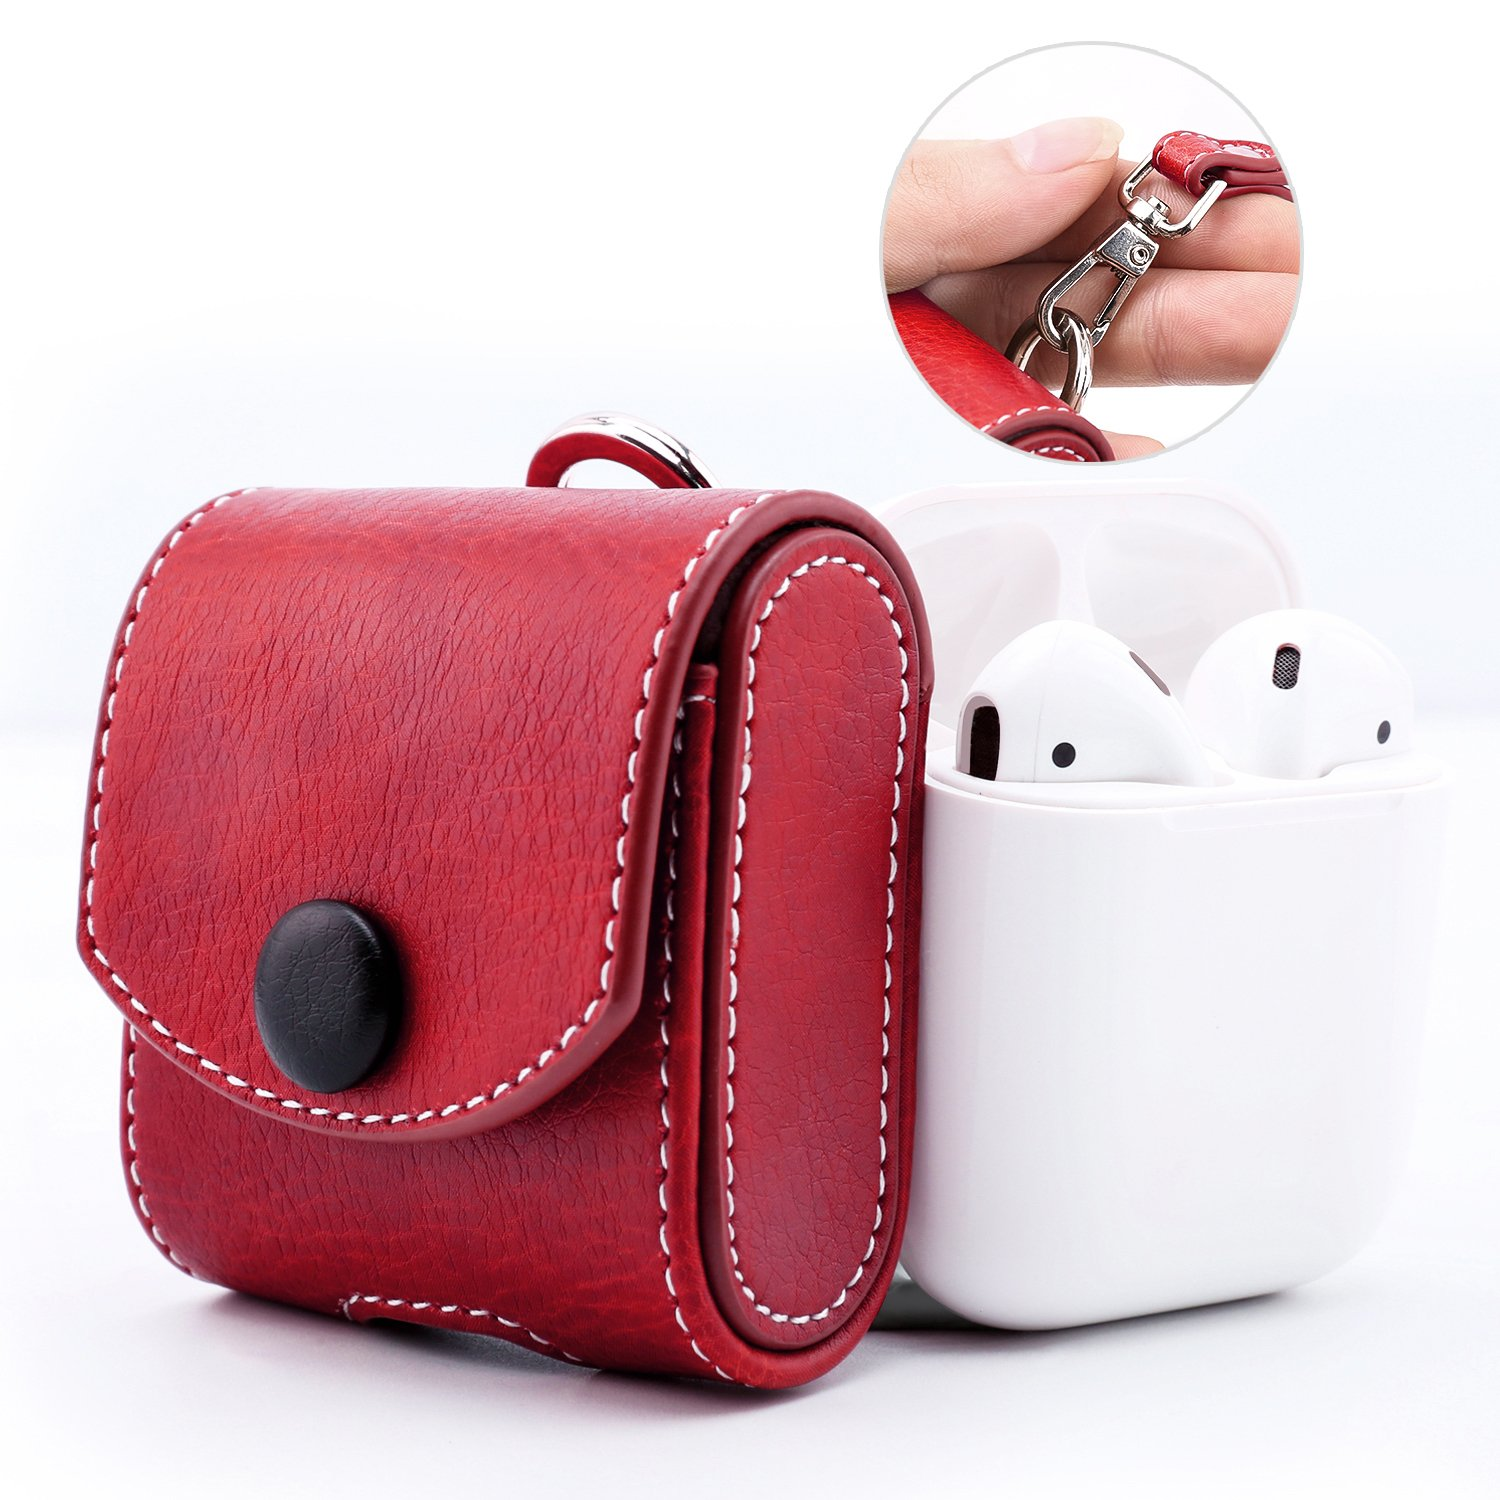 MoKo AirPods Case, Snap Closure Protective Cover Carrying Pouch Pocket, with Holding Strap, for Apple AirPods Charging Case - Dog